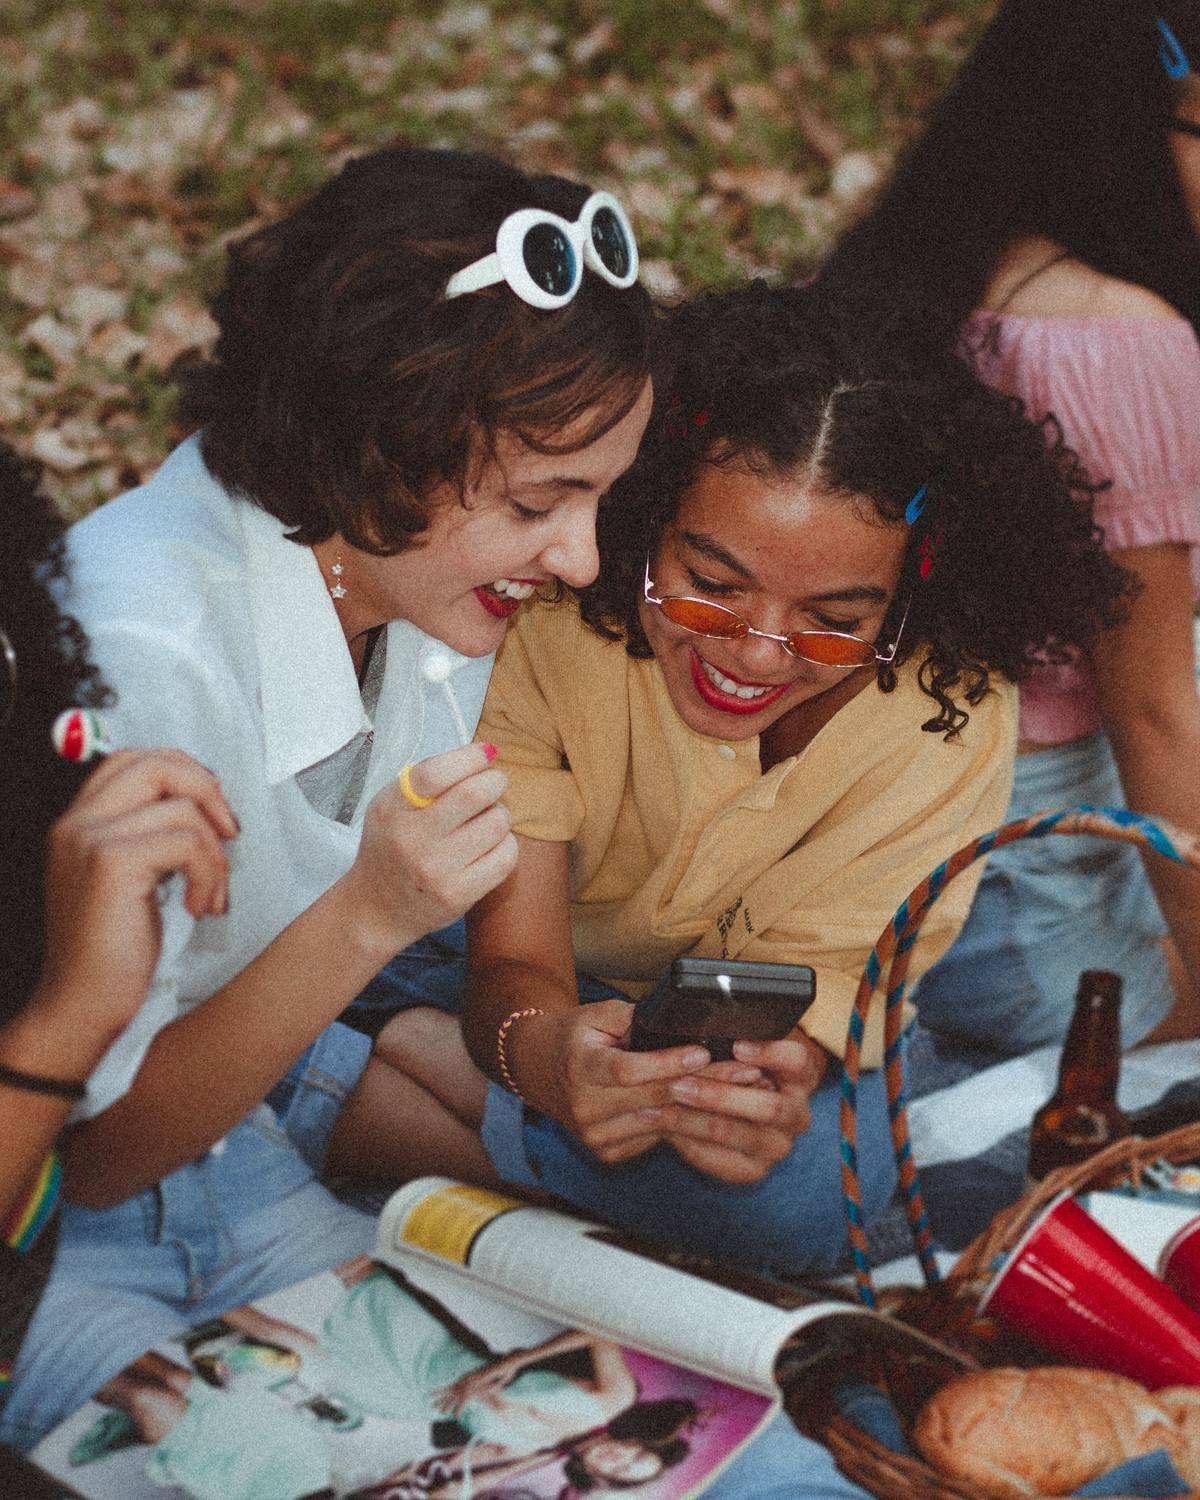 friends looking at a phone while having a picnic